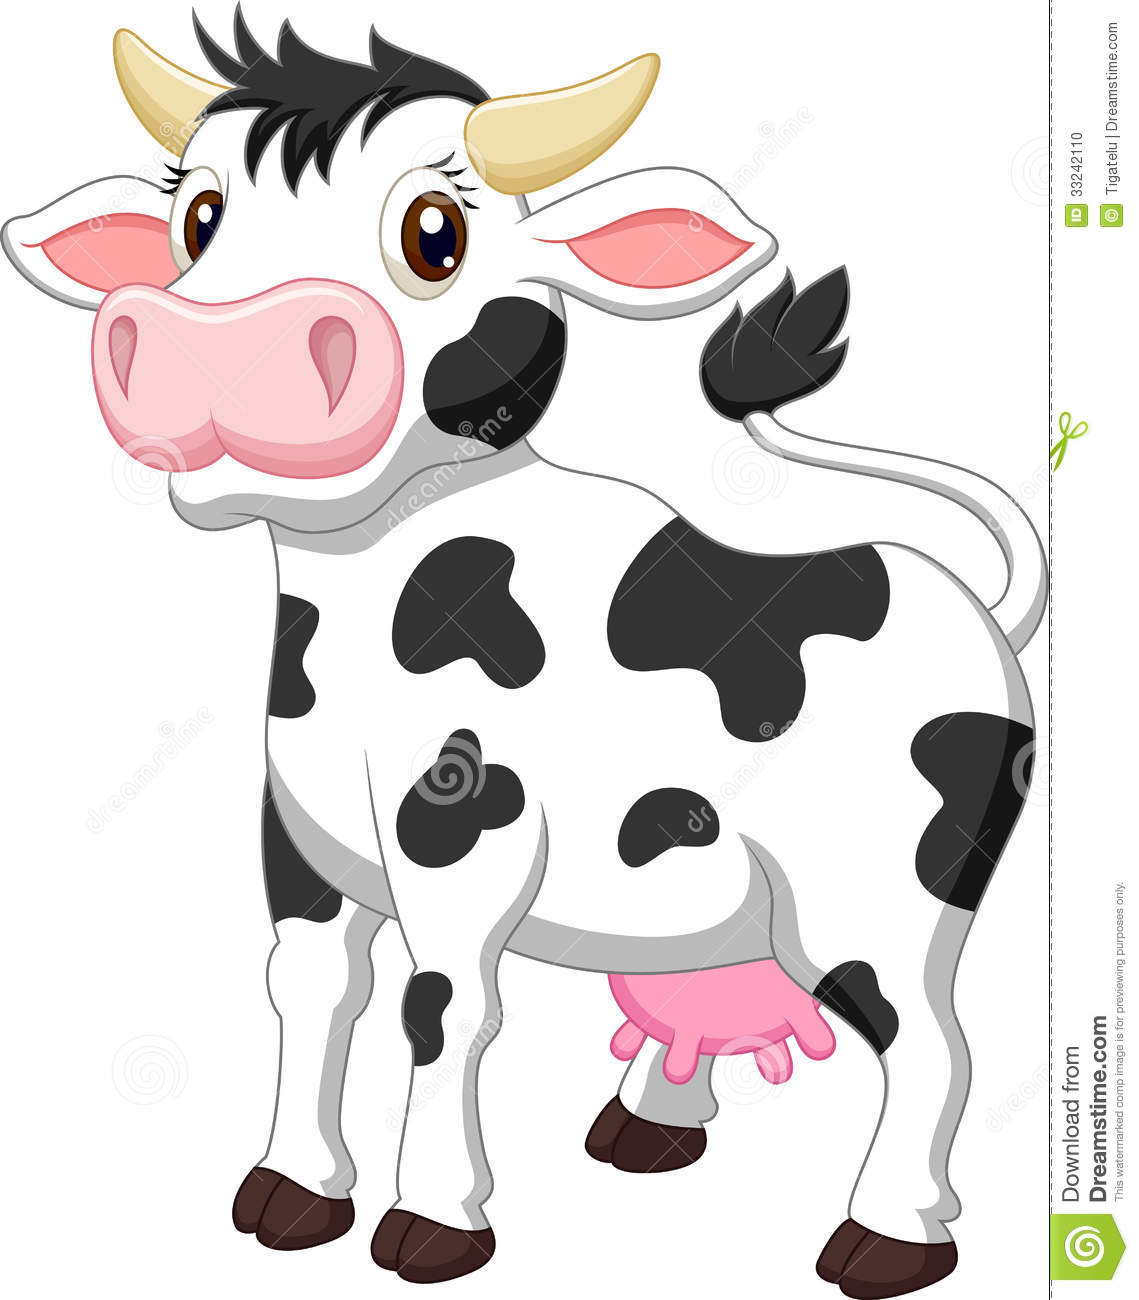 Cute cow cartoon clipart suggest